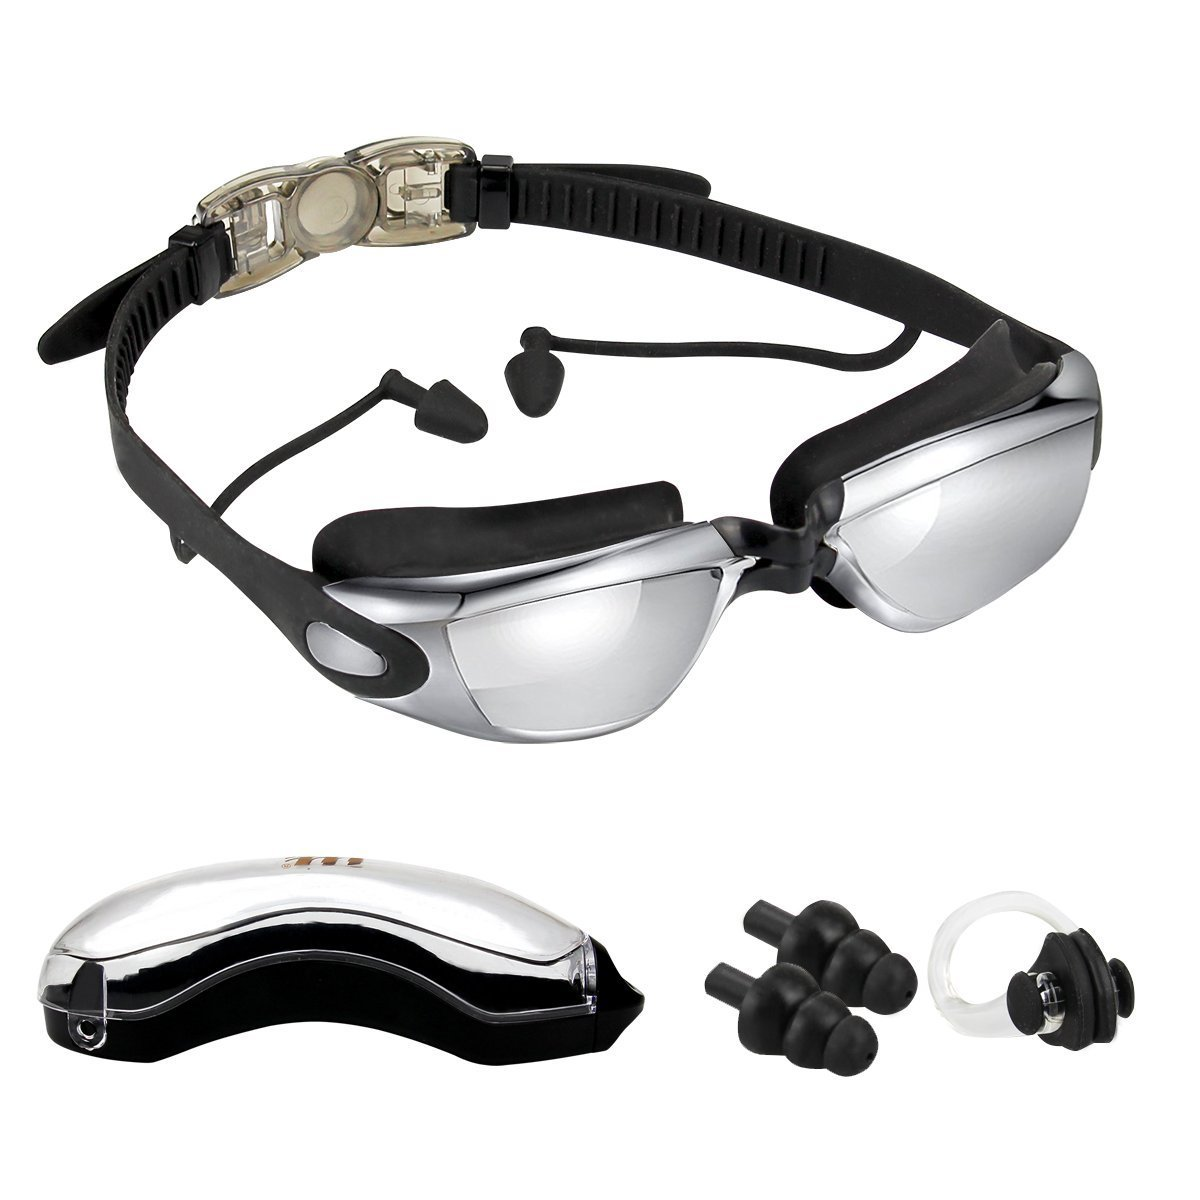 RUNFON Swim Goggles with Earplug, Anti-Fog,UV Protection Mirror Swimming goggles for Adult Men Women Youth Kid Child,Swim Goggles + Case + Nose Clip + Ear Plugs … (black)